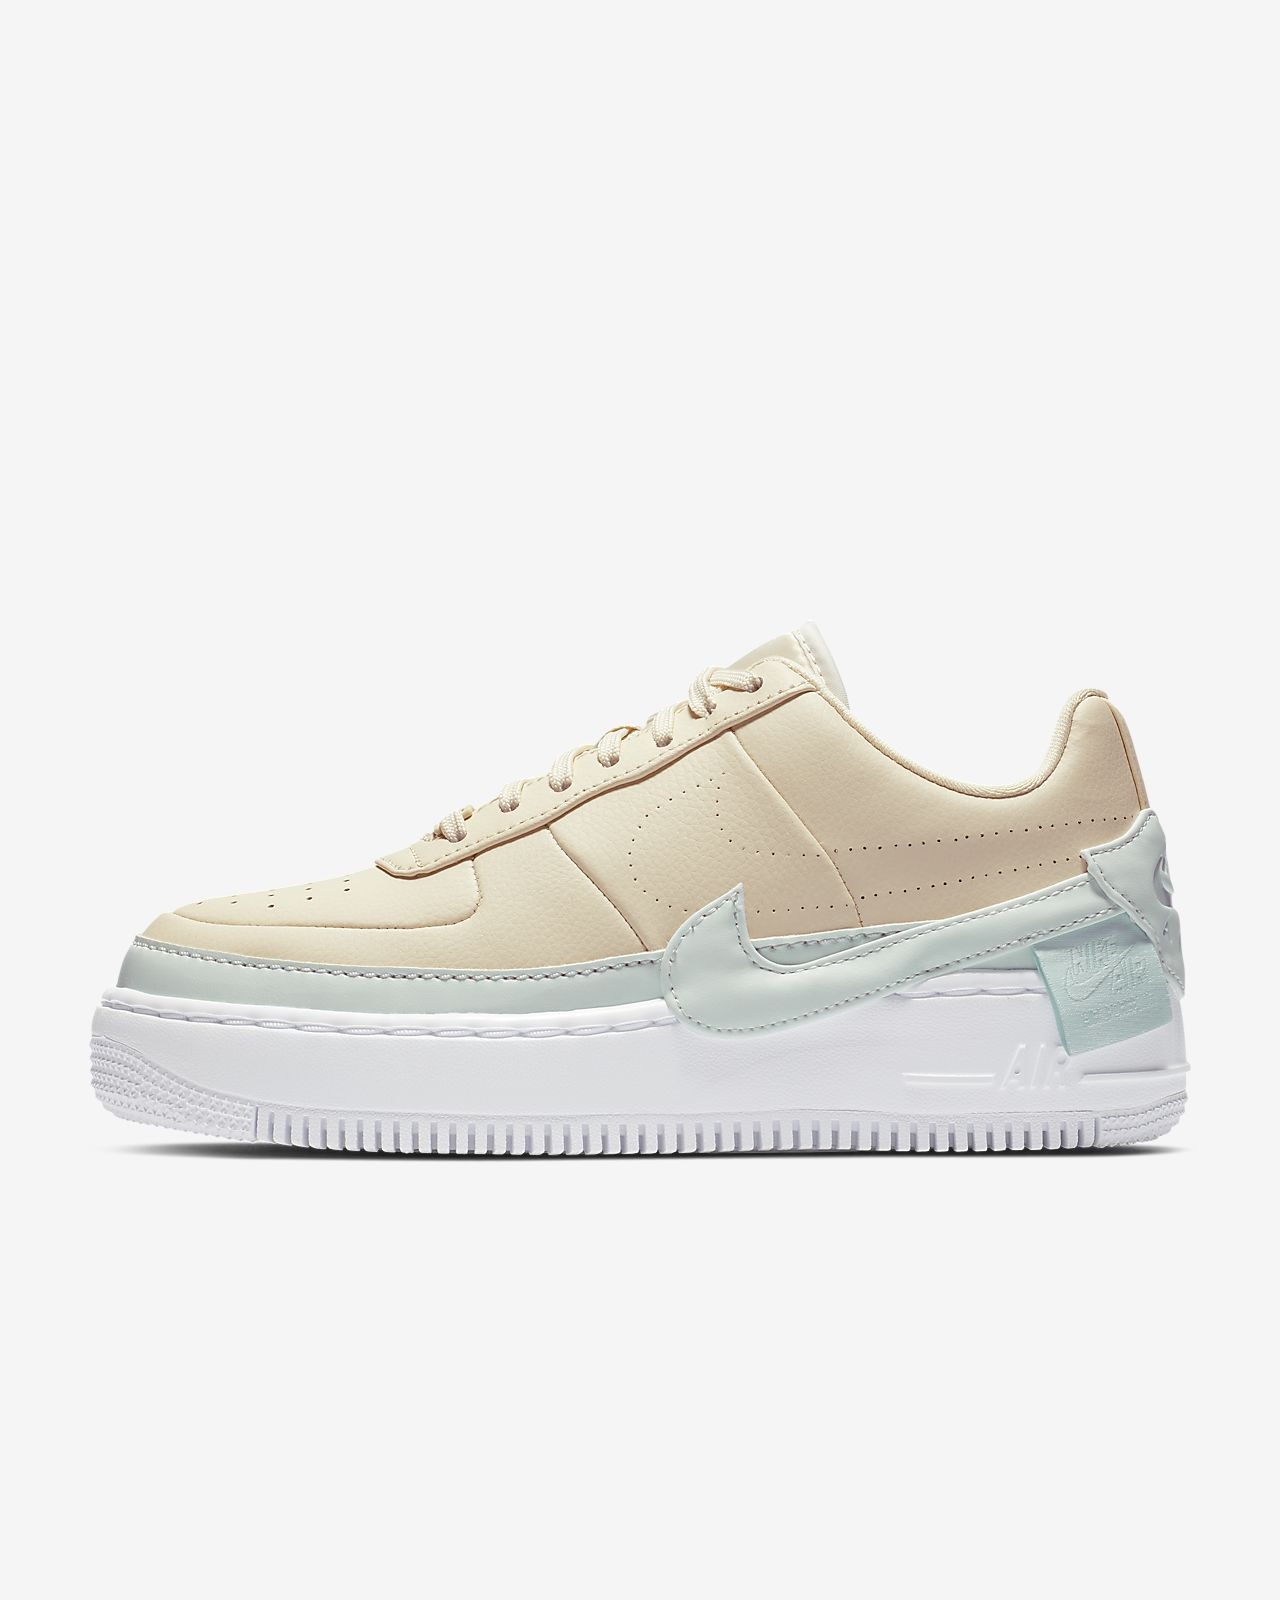 new arrival bb8b3 ac8d3 ... Nike Air Force 1 Jester XX Shoe